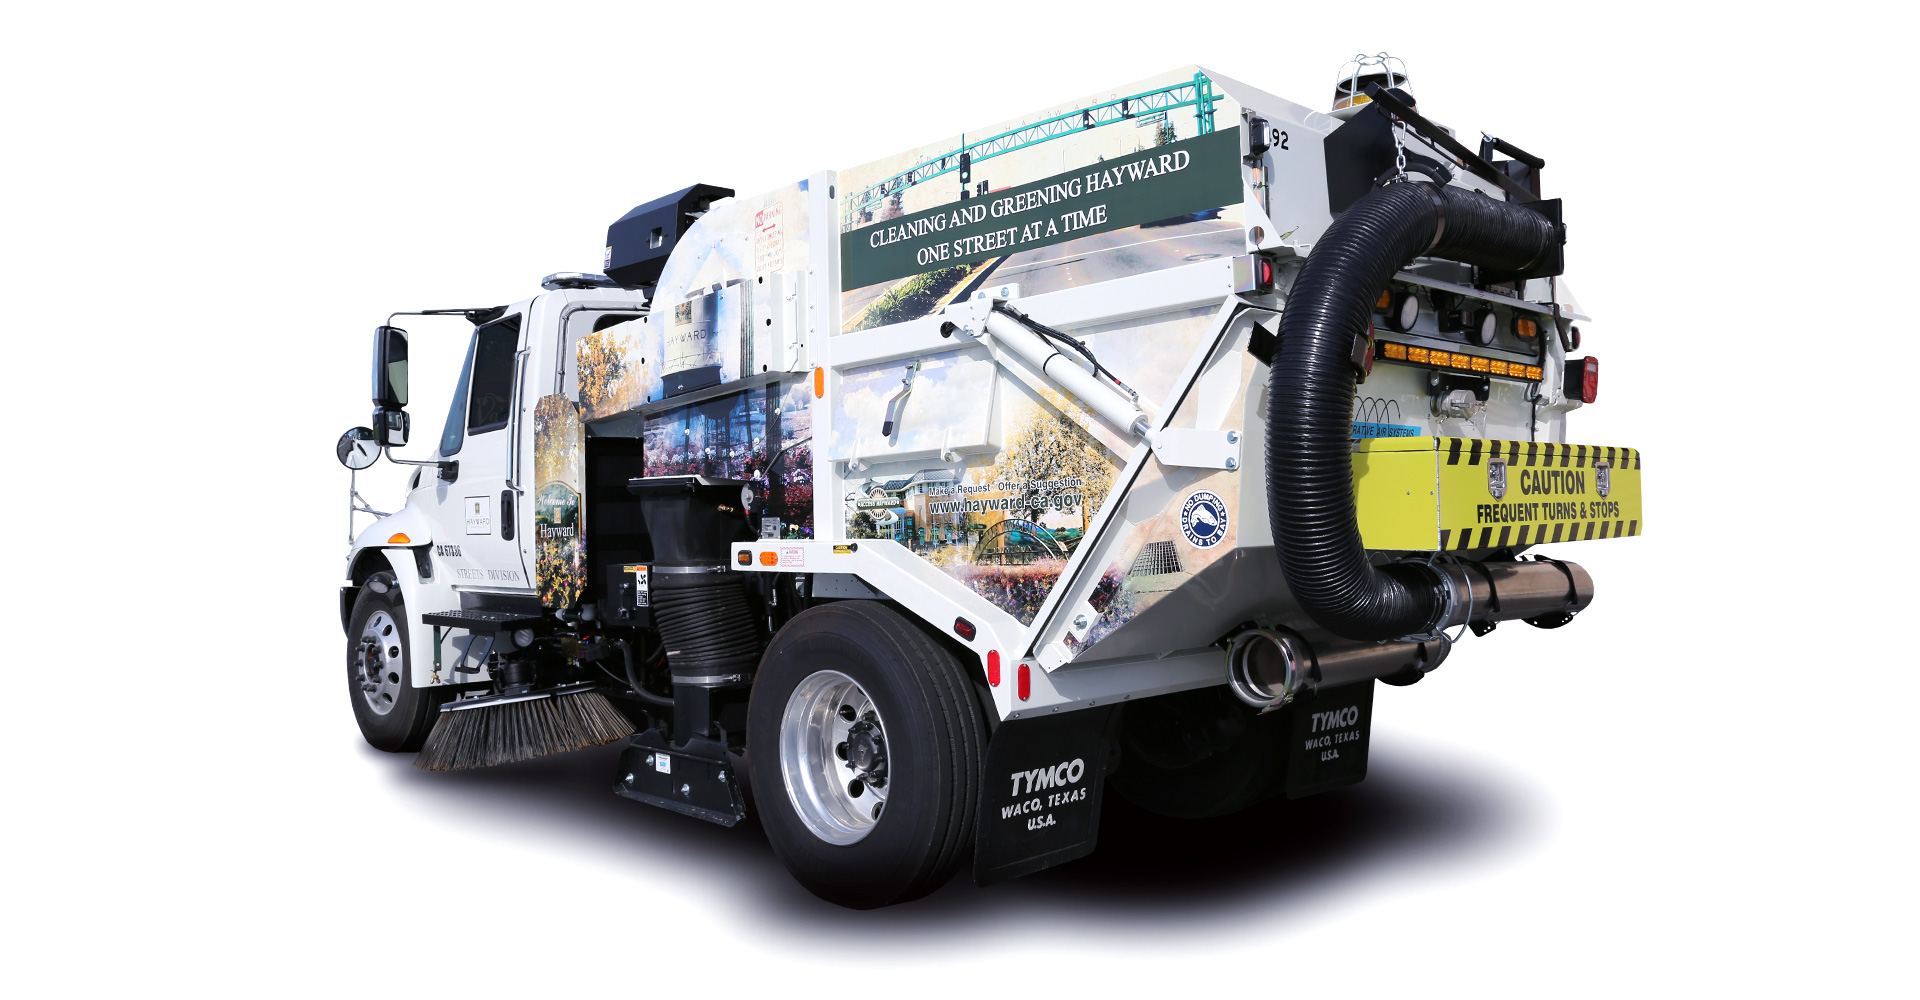 city of hayward street sweeper b 06